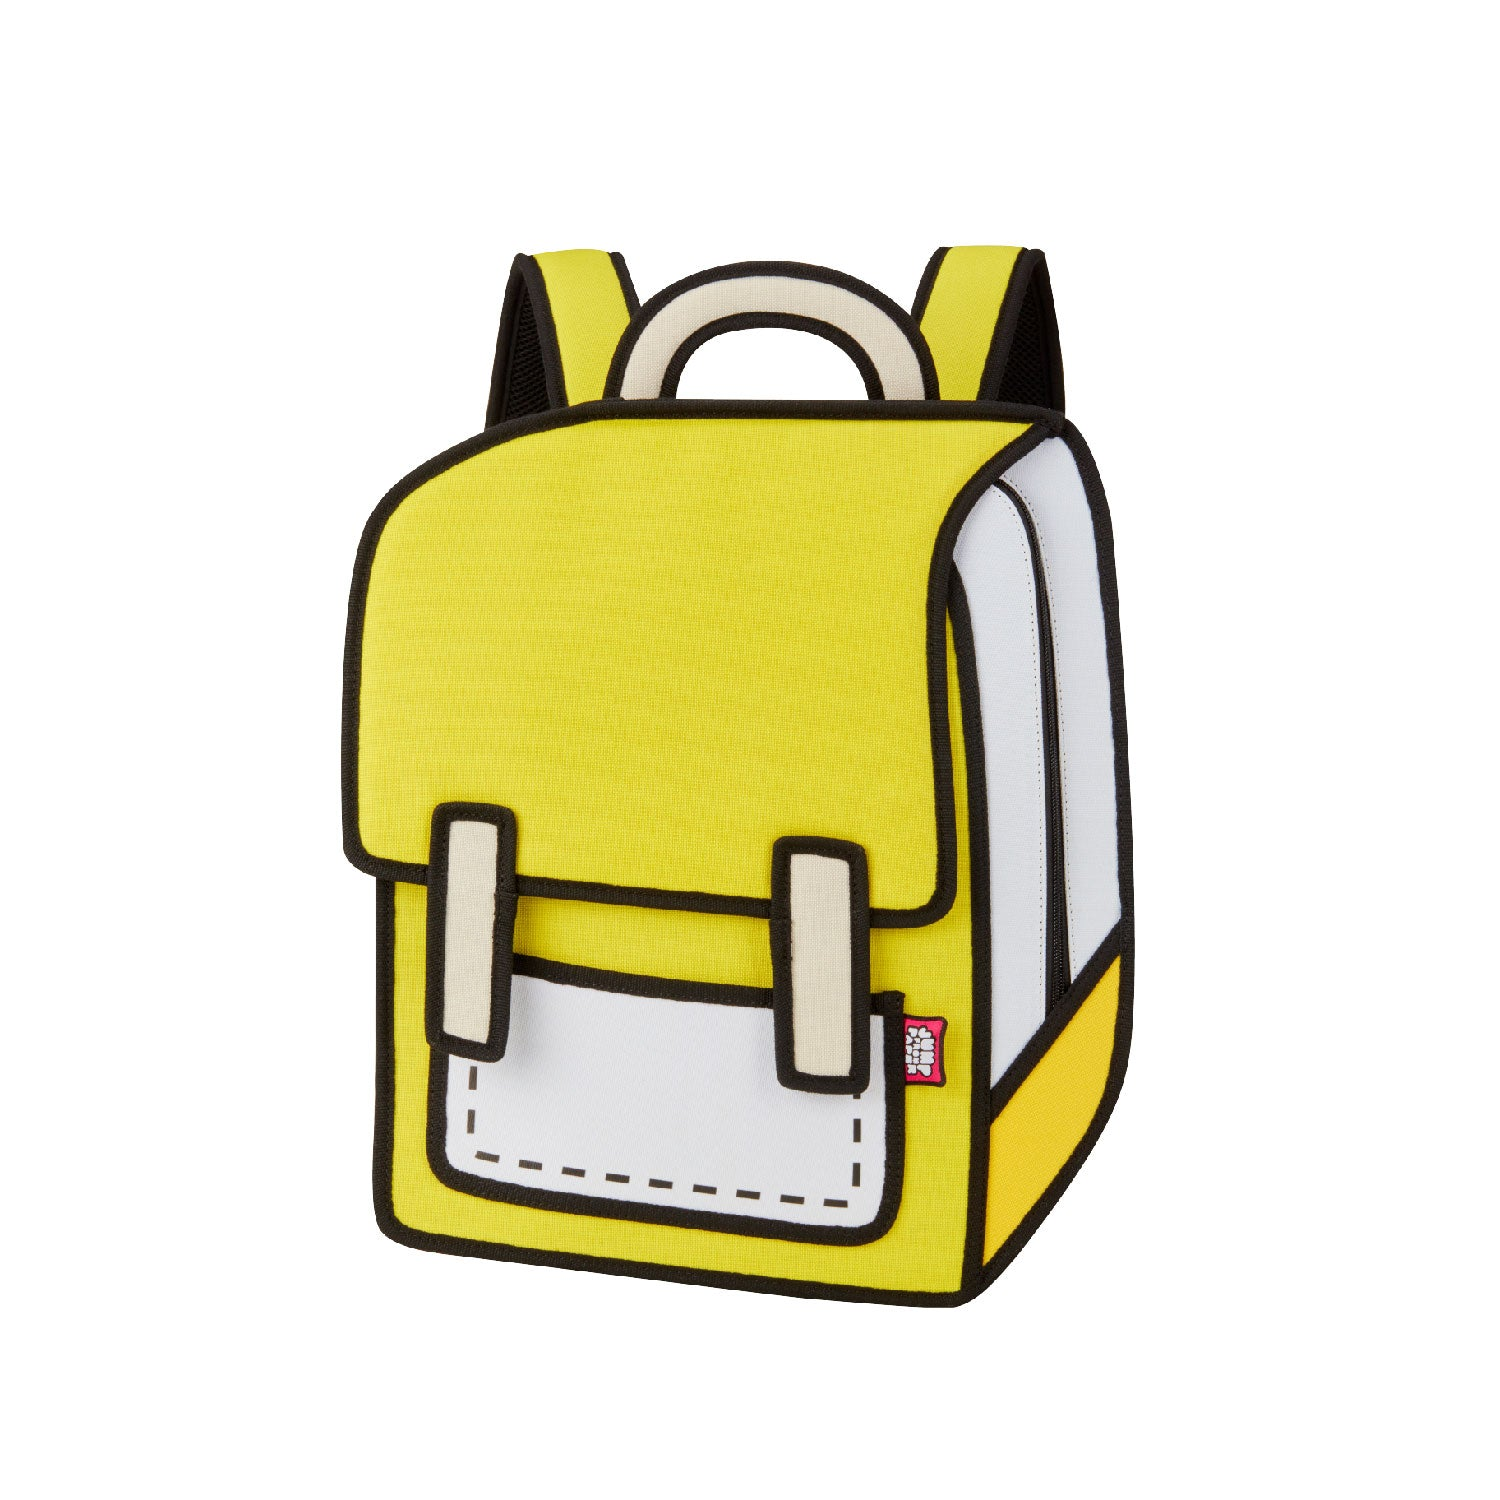 2d Bag Minion Yellow Laptop Backpack Jumpfrompaper Cartoon Bag